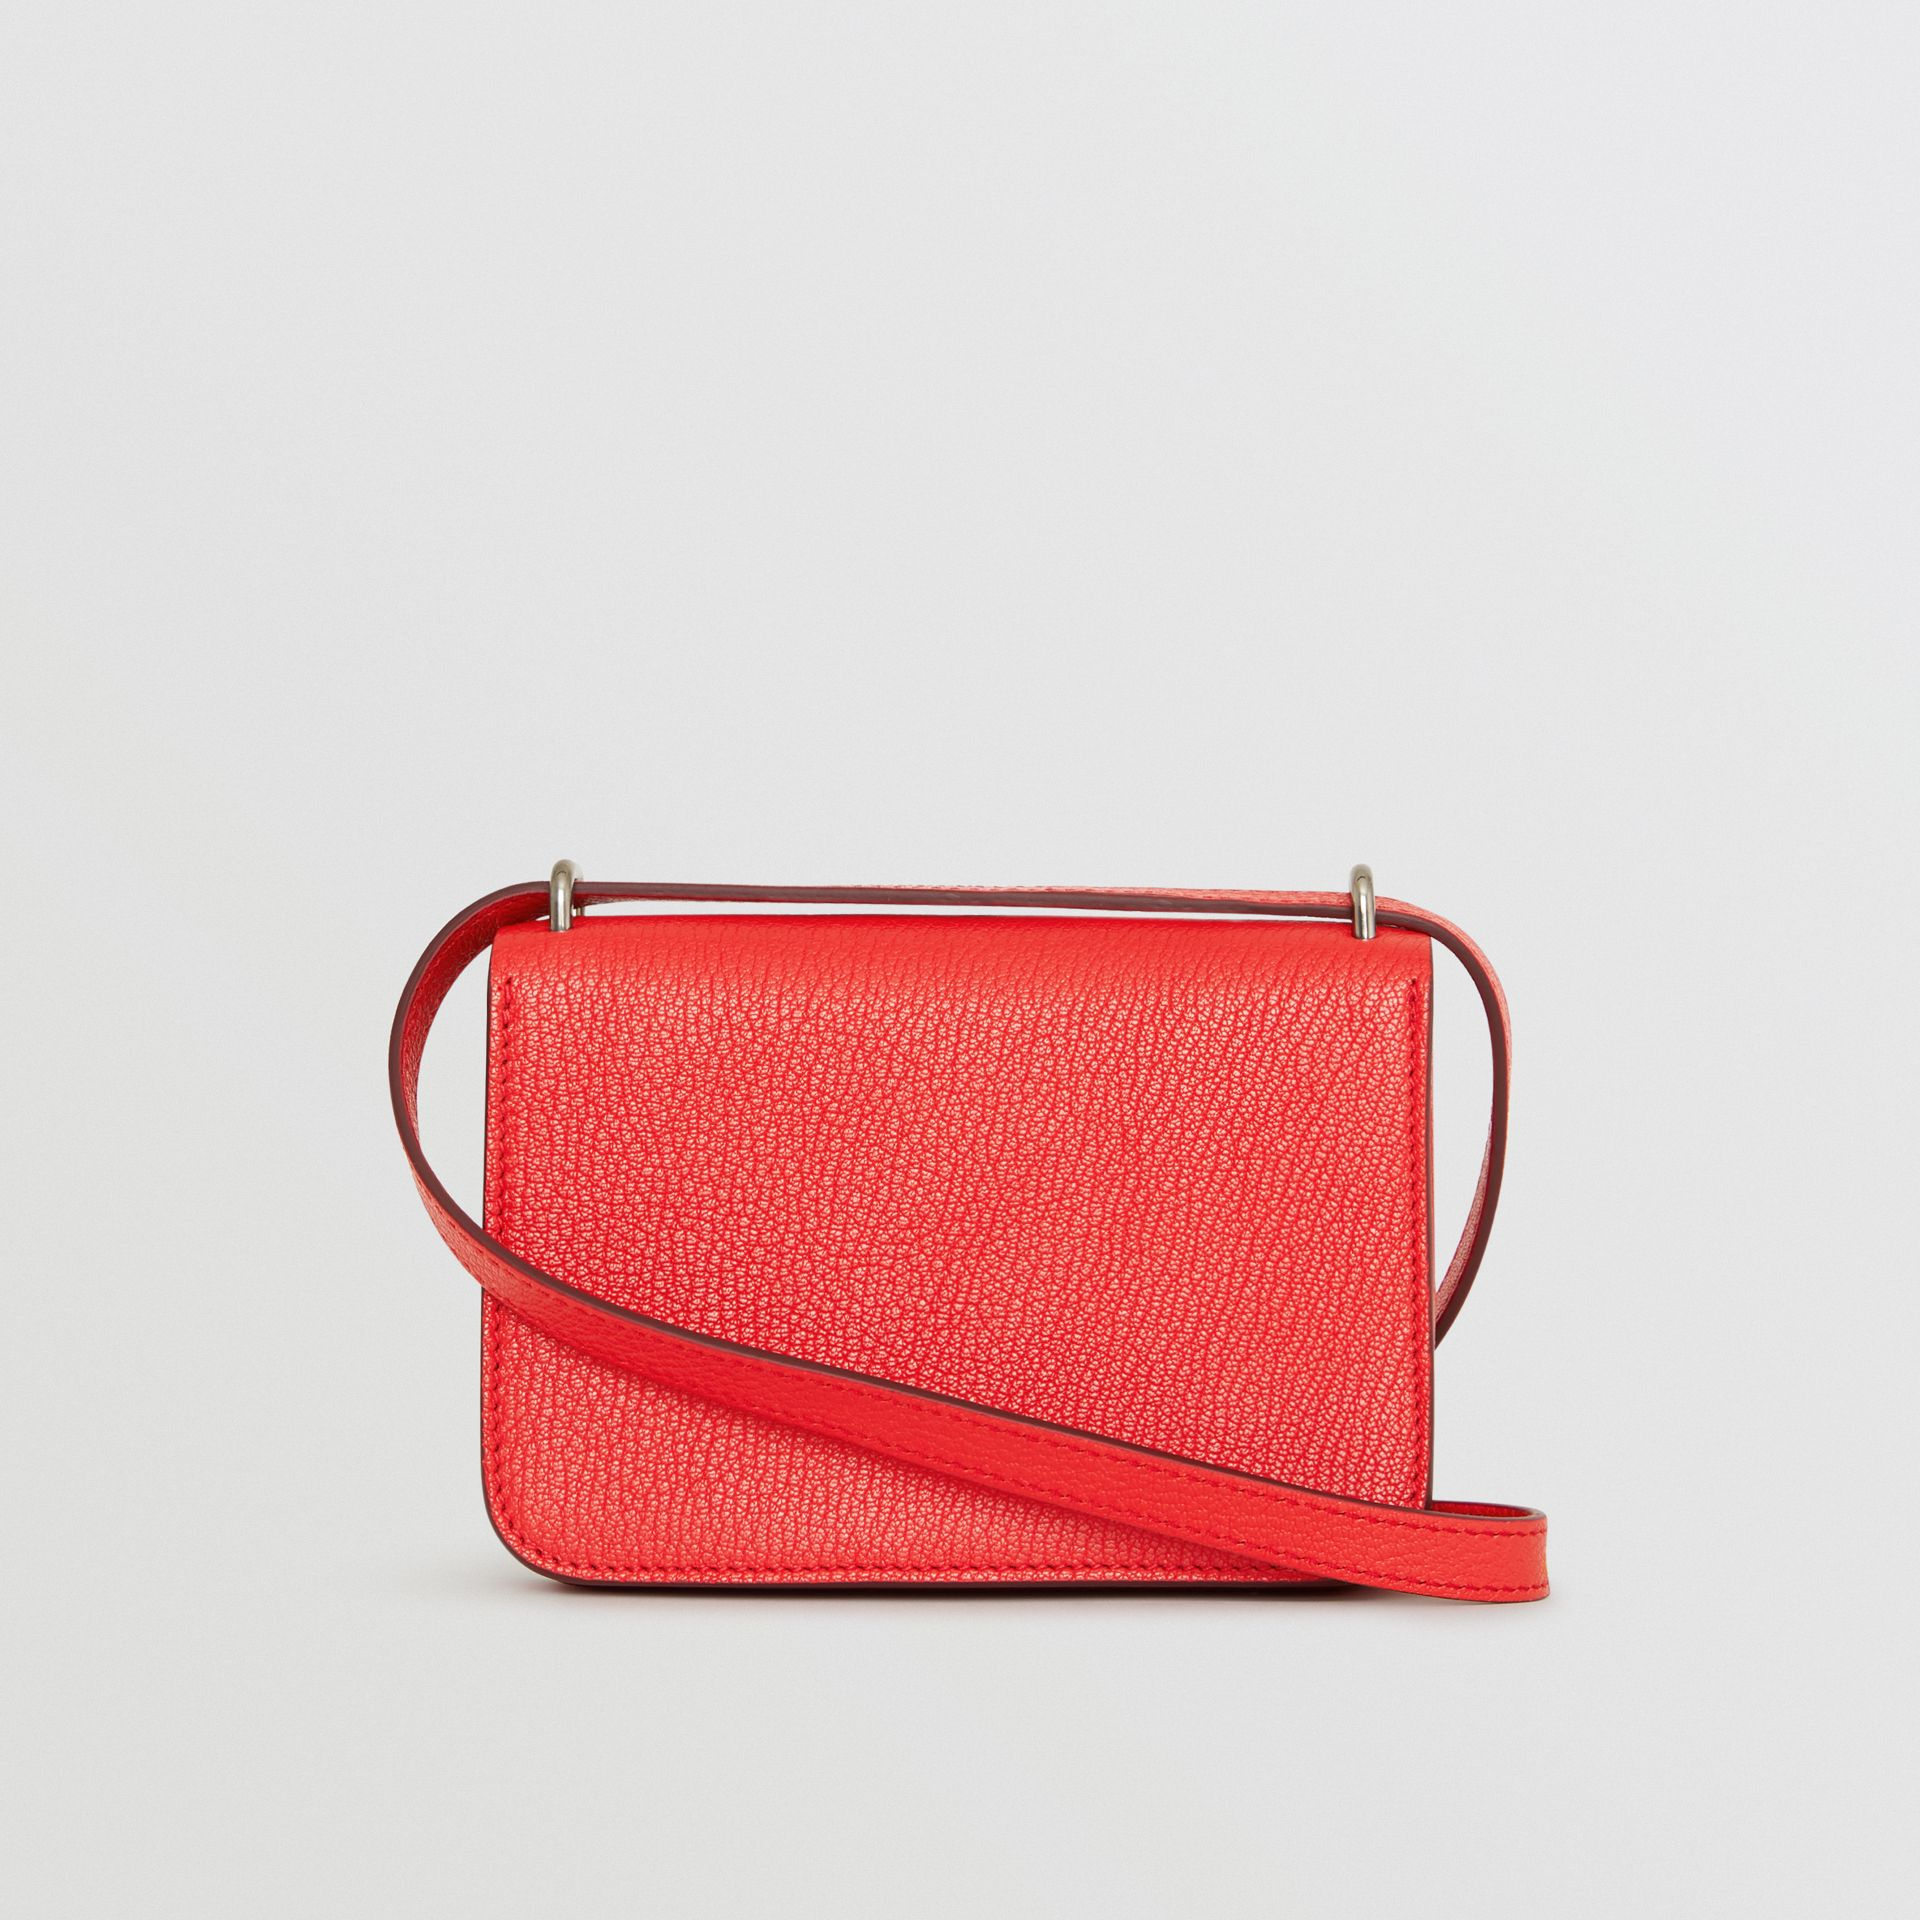 Mini sac The D-ring en cuir (Rouge Vif) - Femme | Burberry Canada - photo de la galerie 7